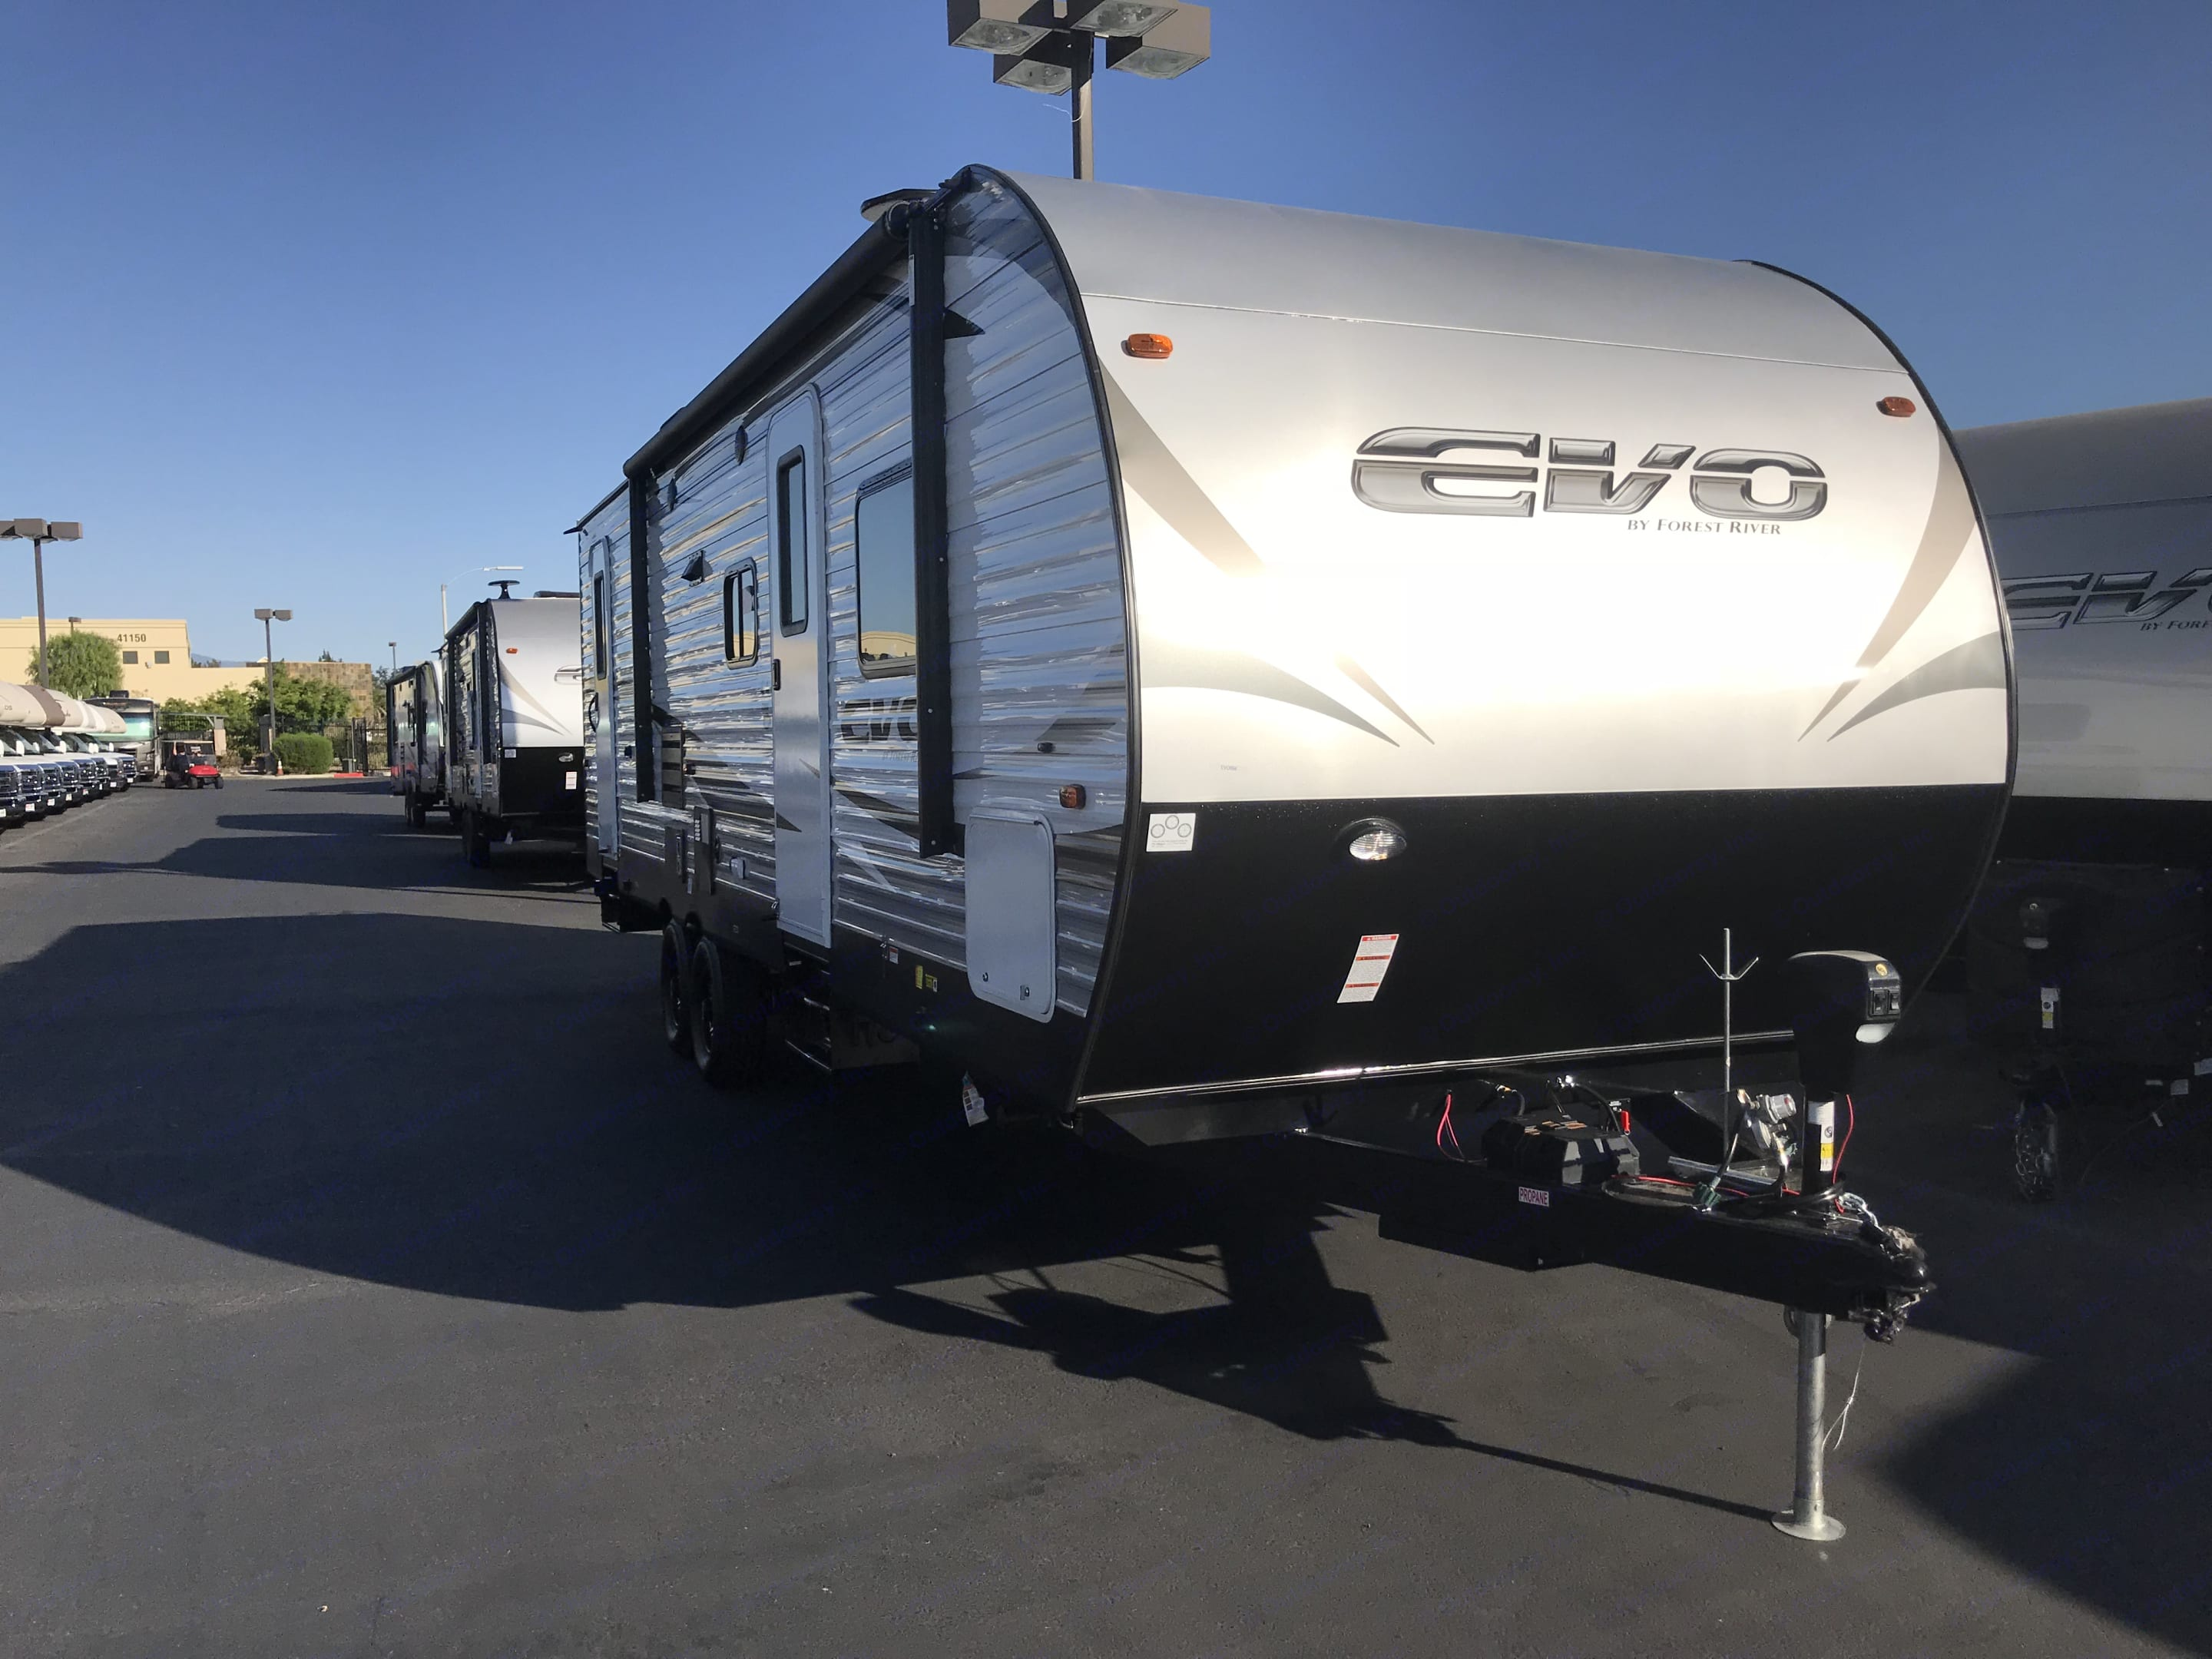 Power Tounge, power awning, led outside lighting & outside bluetooth speakers. Forest River Evo 2018